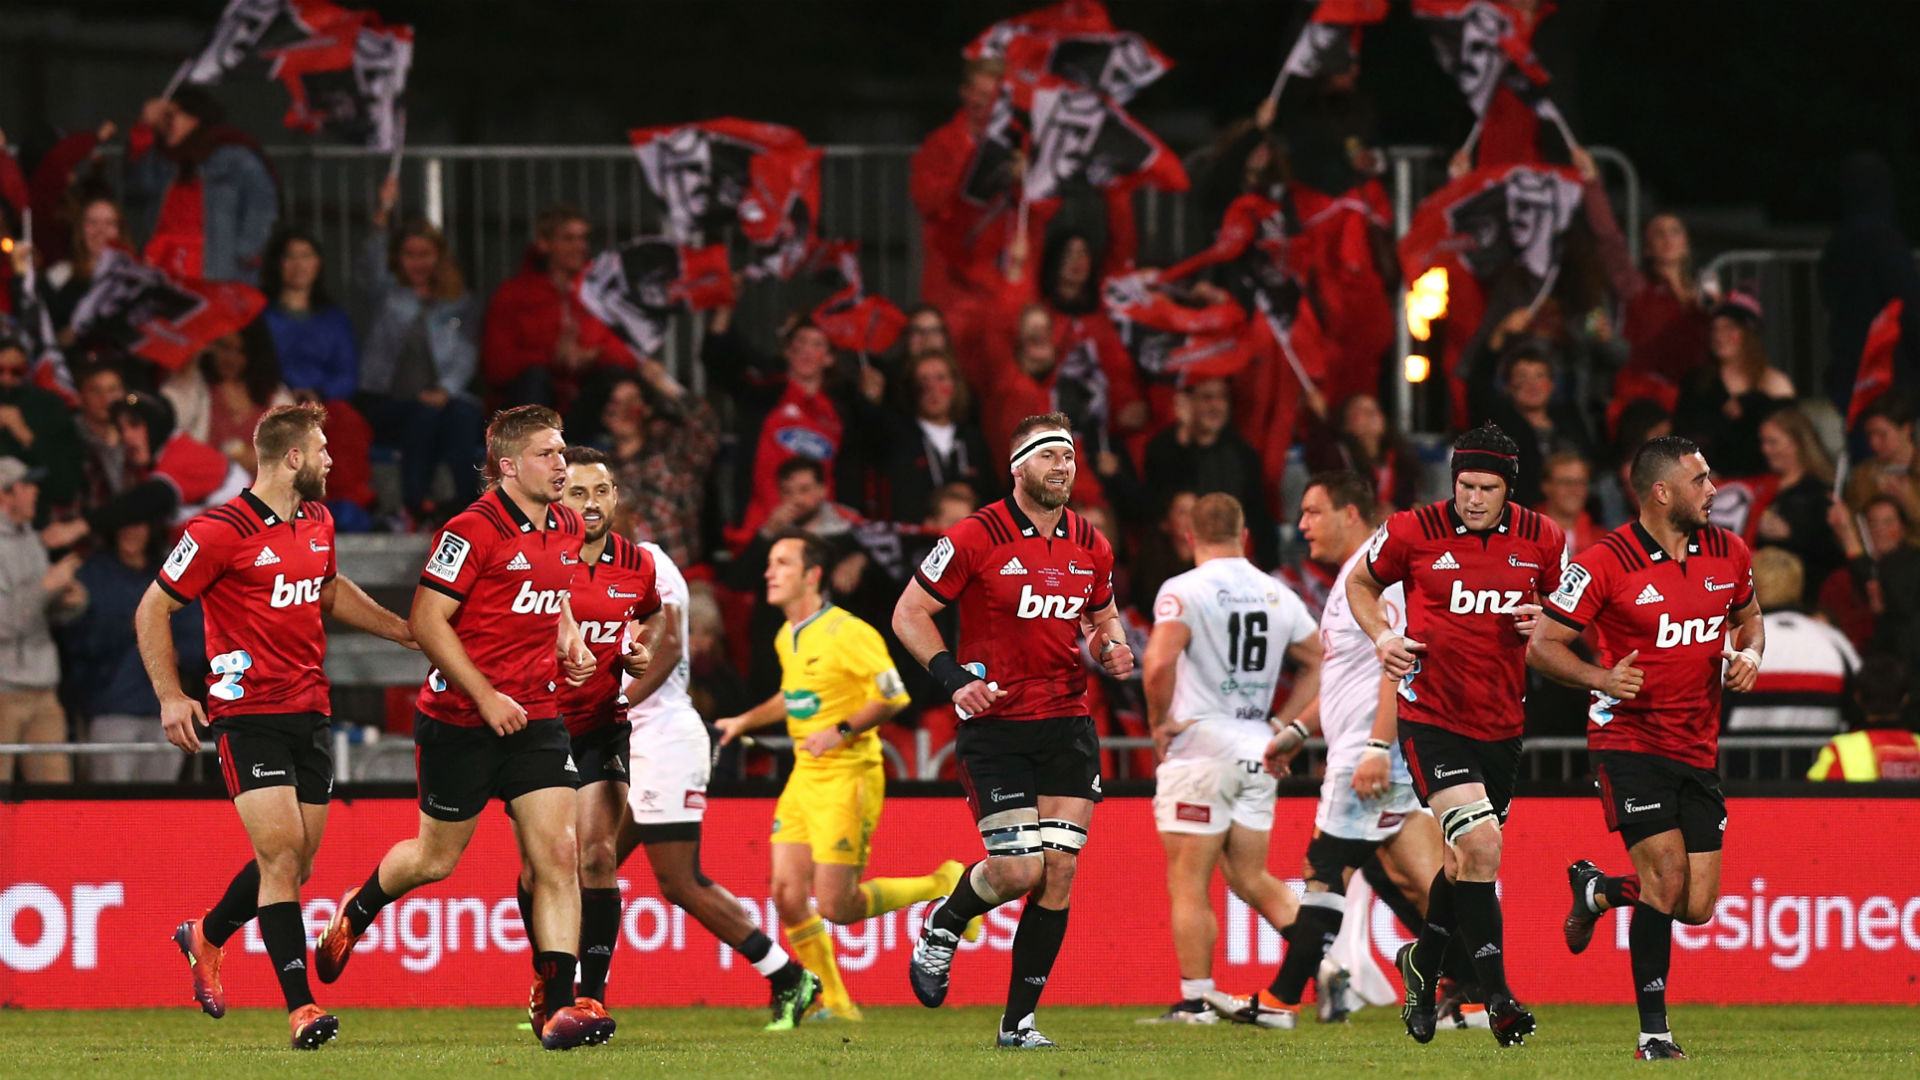 Last-gasp Hunt rescues Crusaders, Reds beat spirited Sunwolves